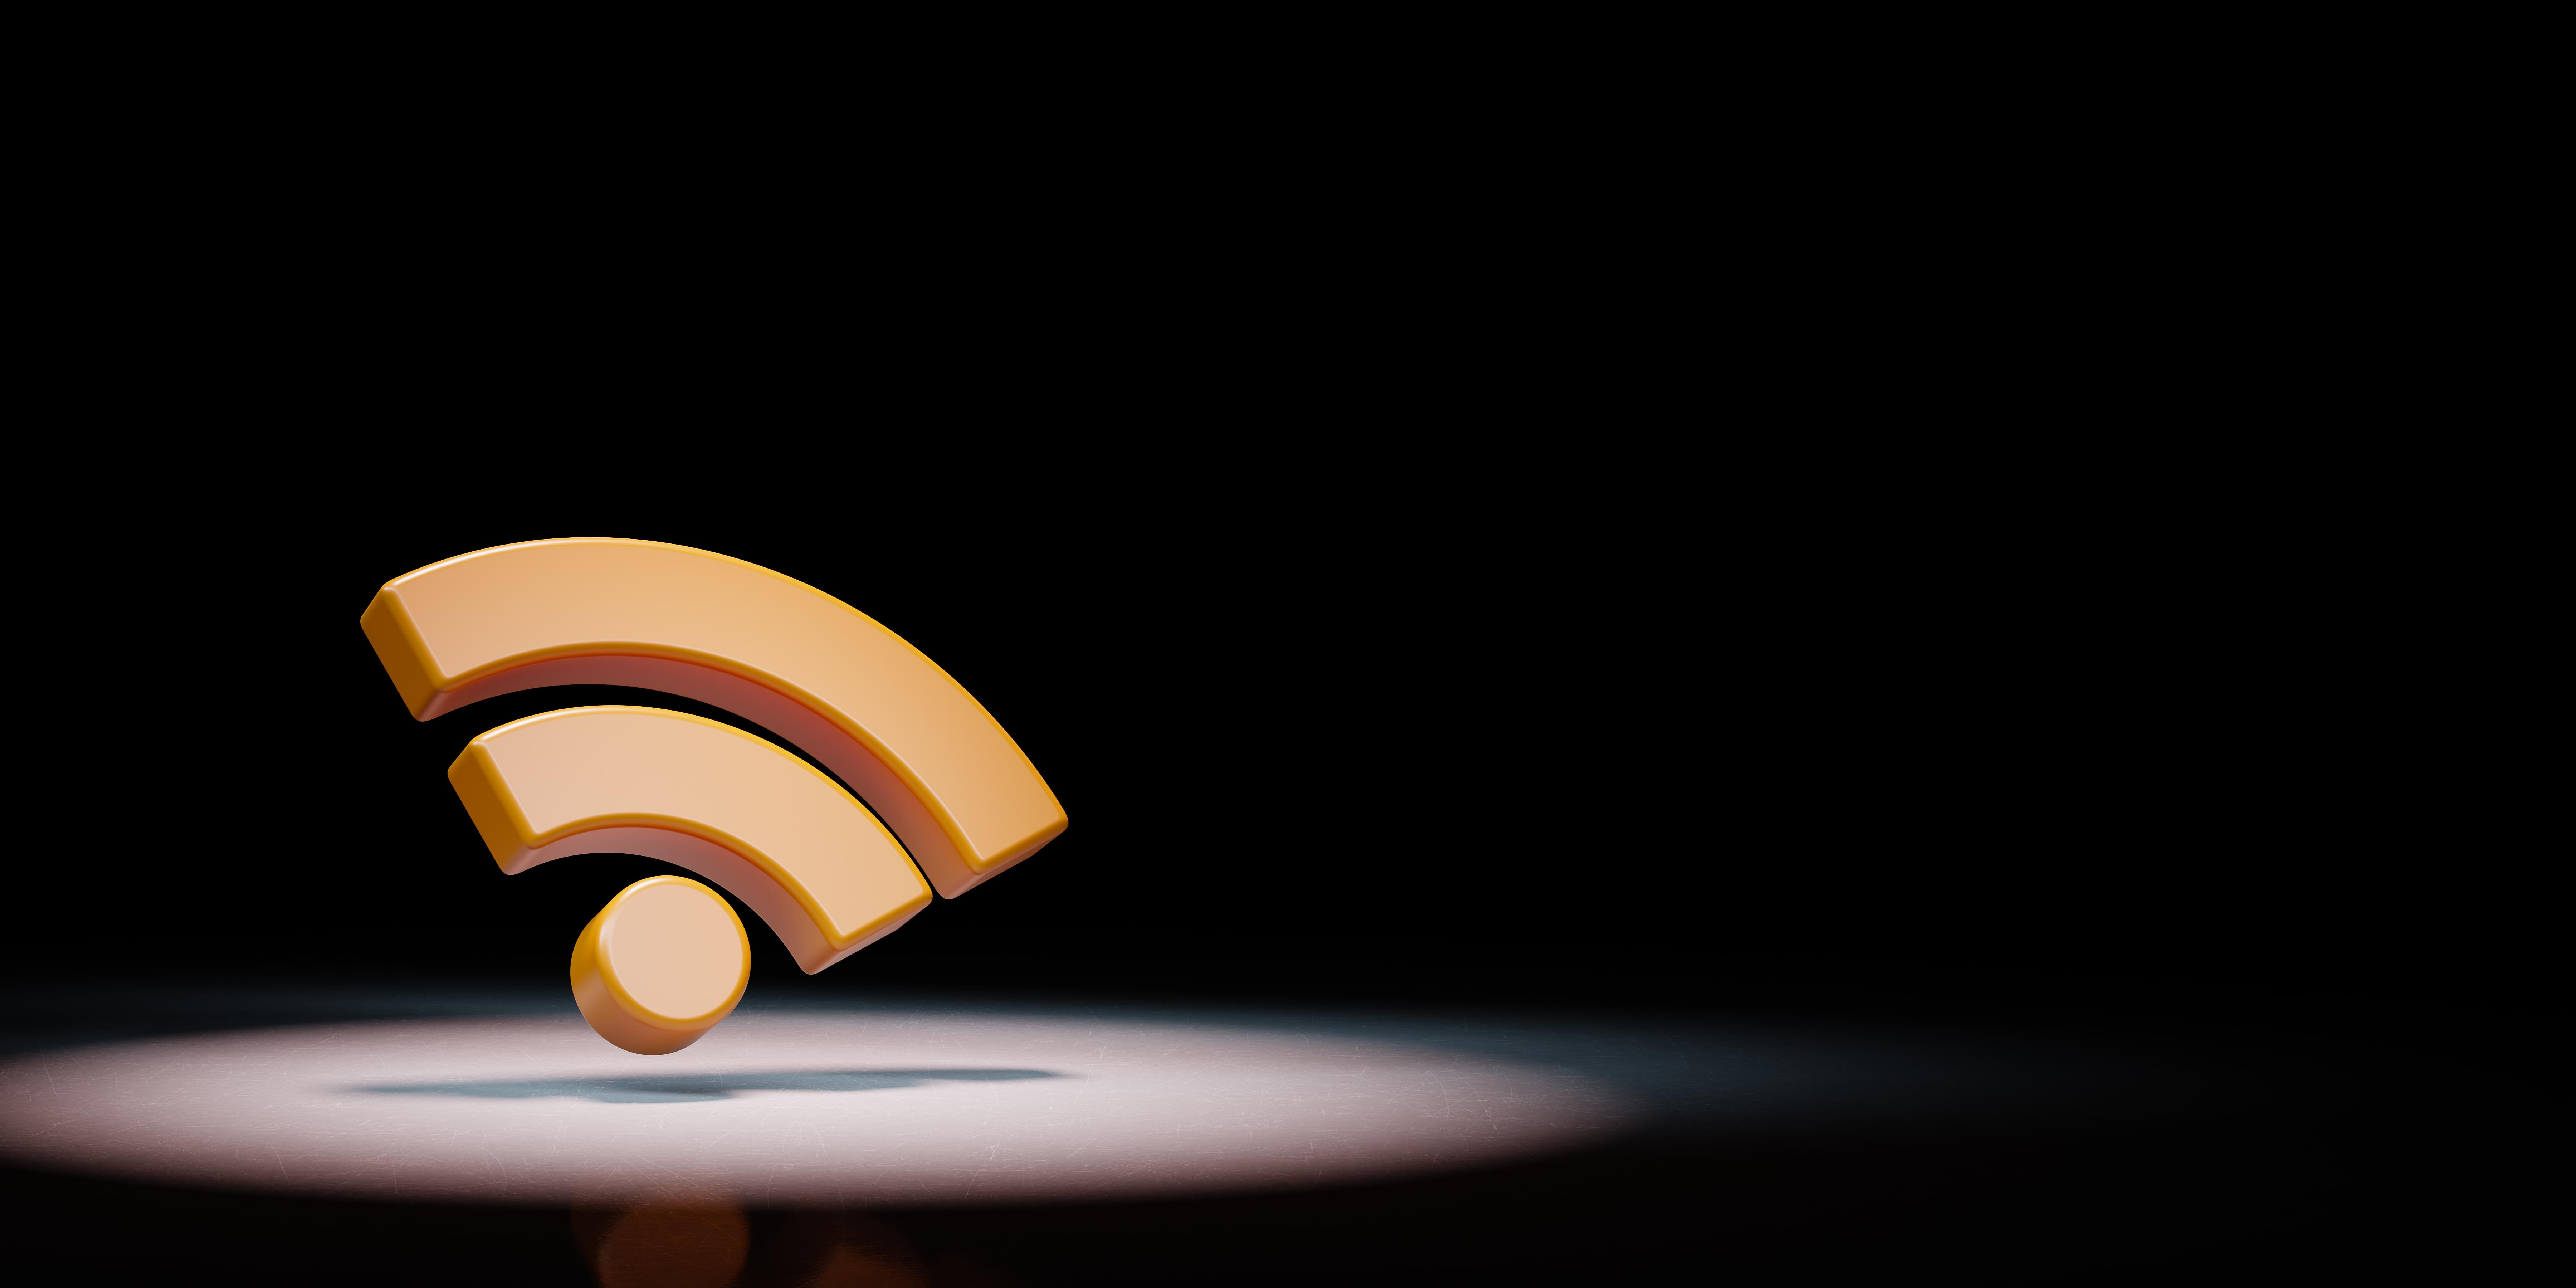 Thumbnail for RSS feeds are now live